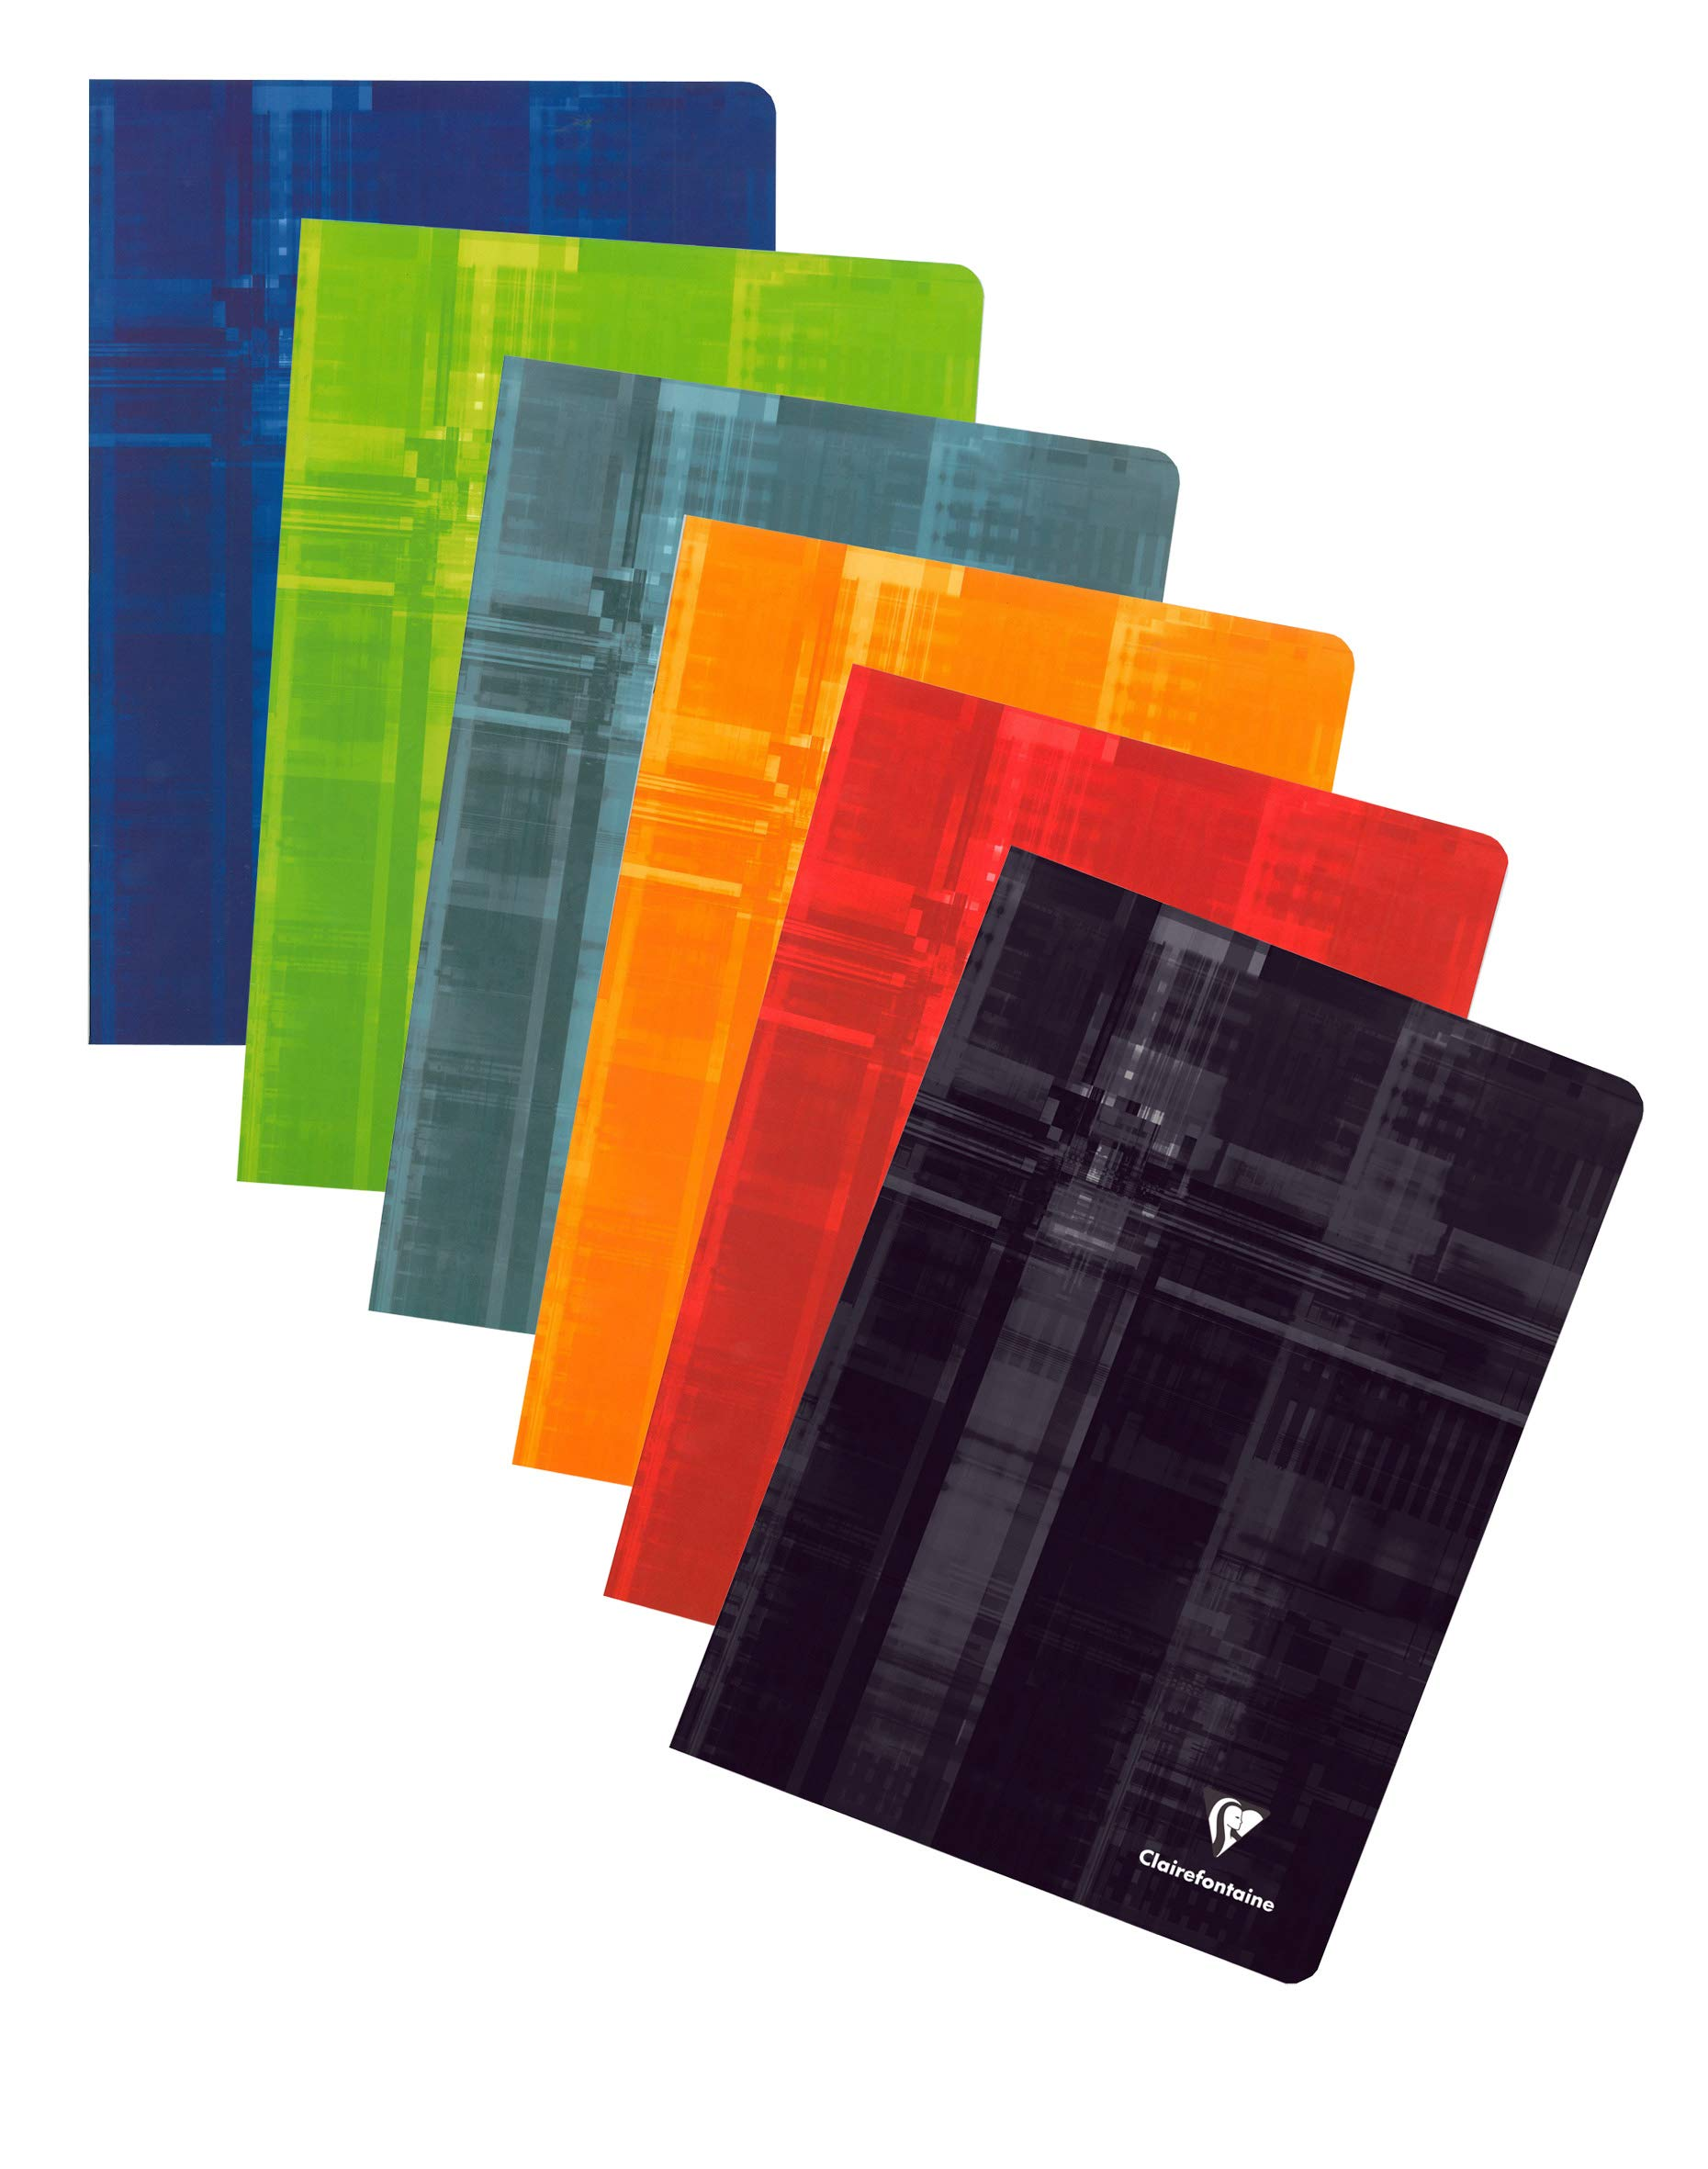 Clairefontaine Classic Staple-Bound Notebooks Ruled with Margin 8 1/4 in. x 11 3/4 in. 40 Sheets